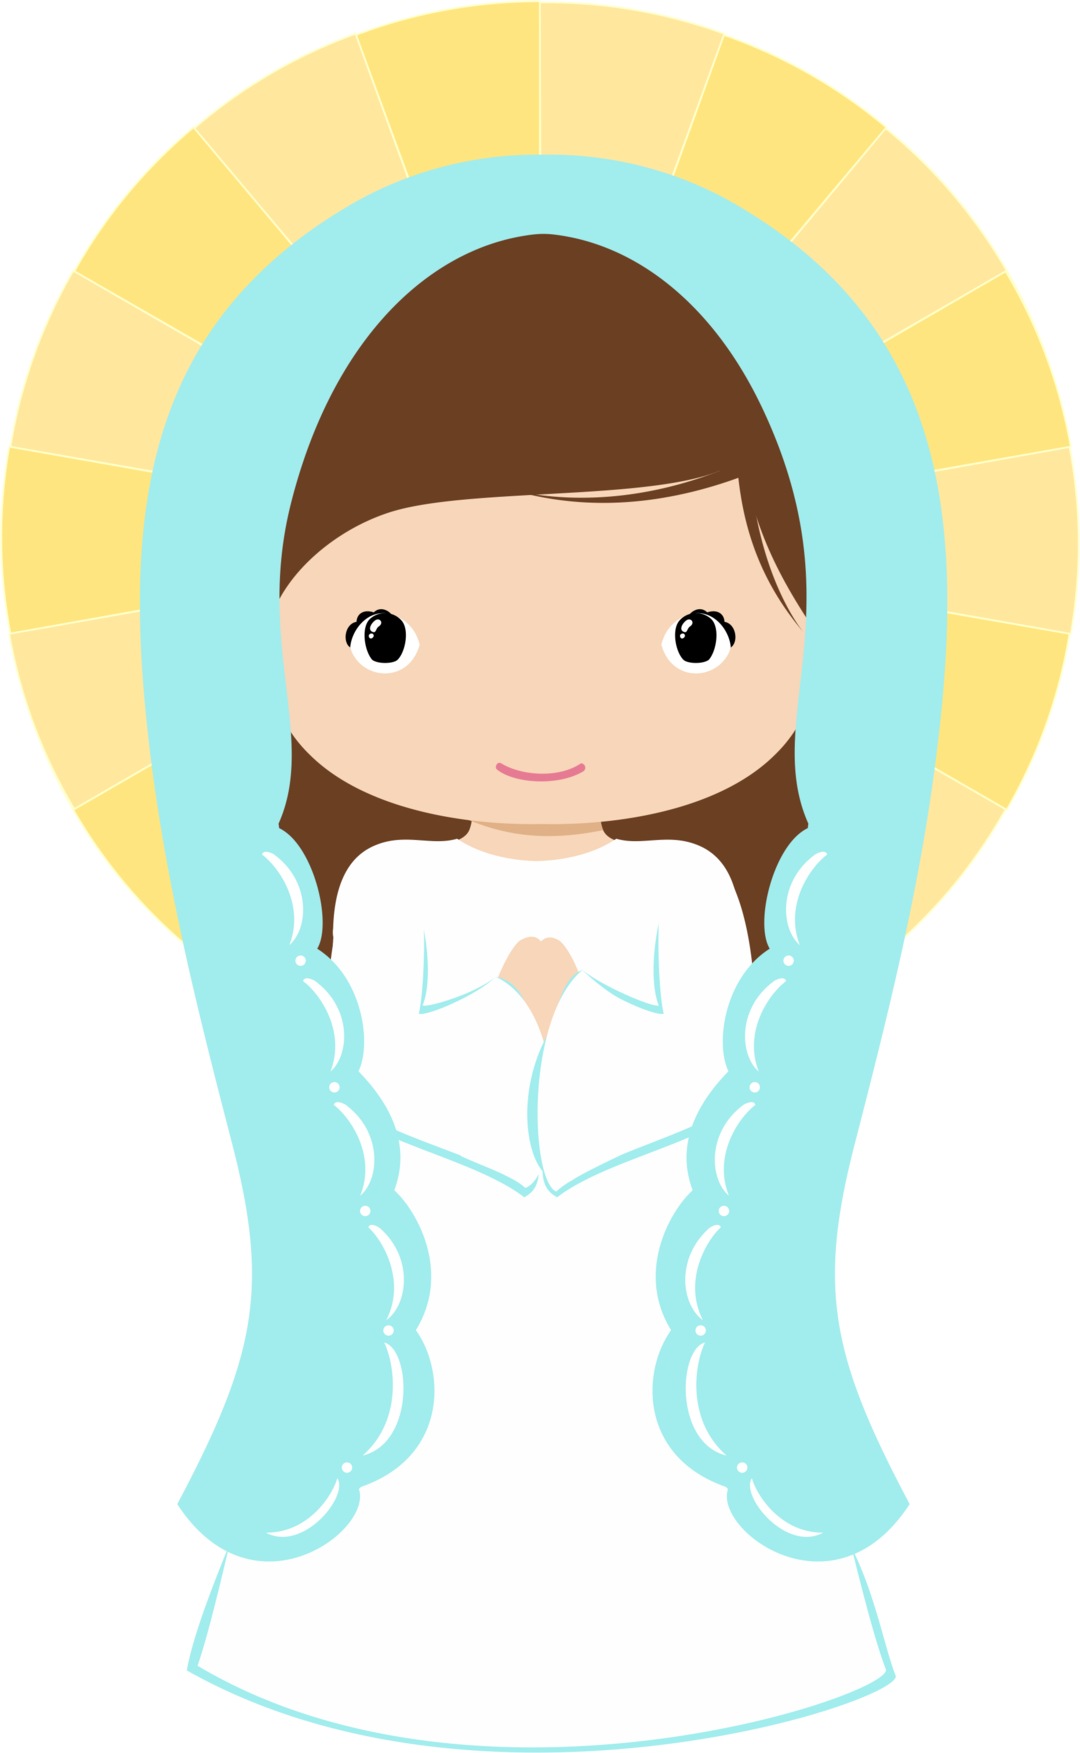 pin by ika maria on holy family pinterest digital communion and rh pinterest com holy family clipart black and white holy family clipart black and white